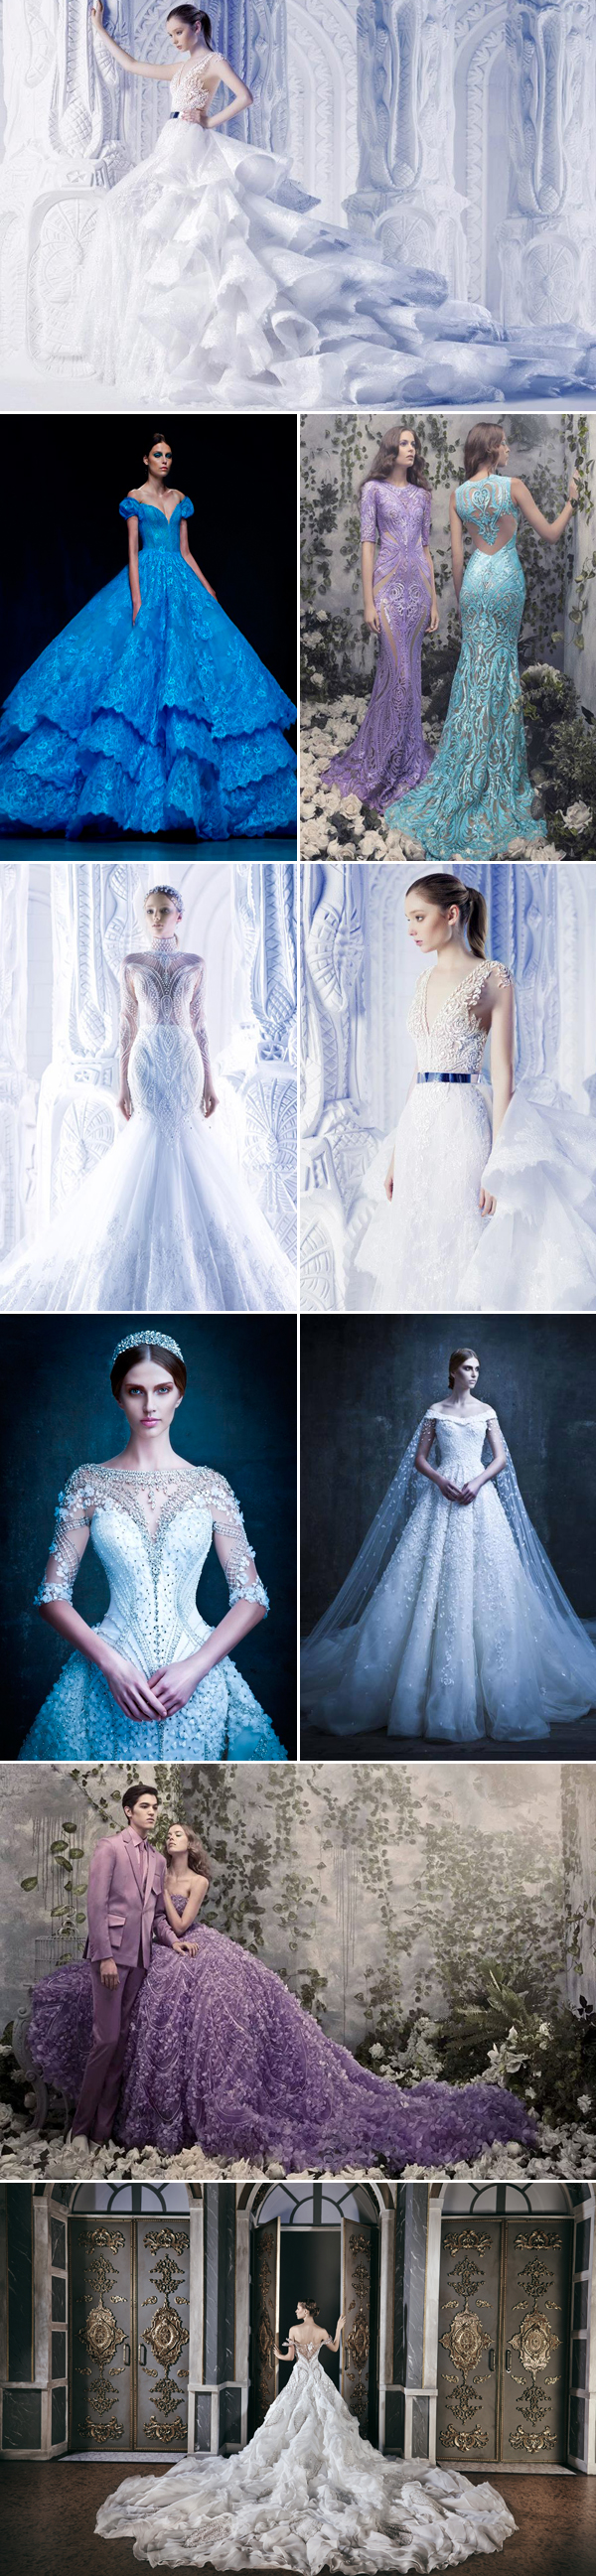 Top 10 Filipino Wedding Dress Designers We Love! - Praise Wedding